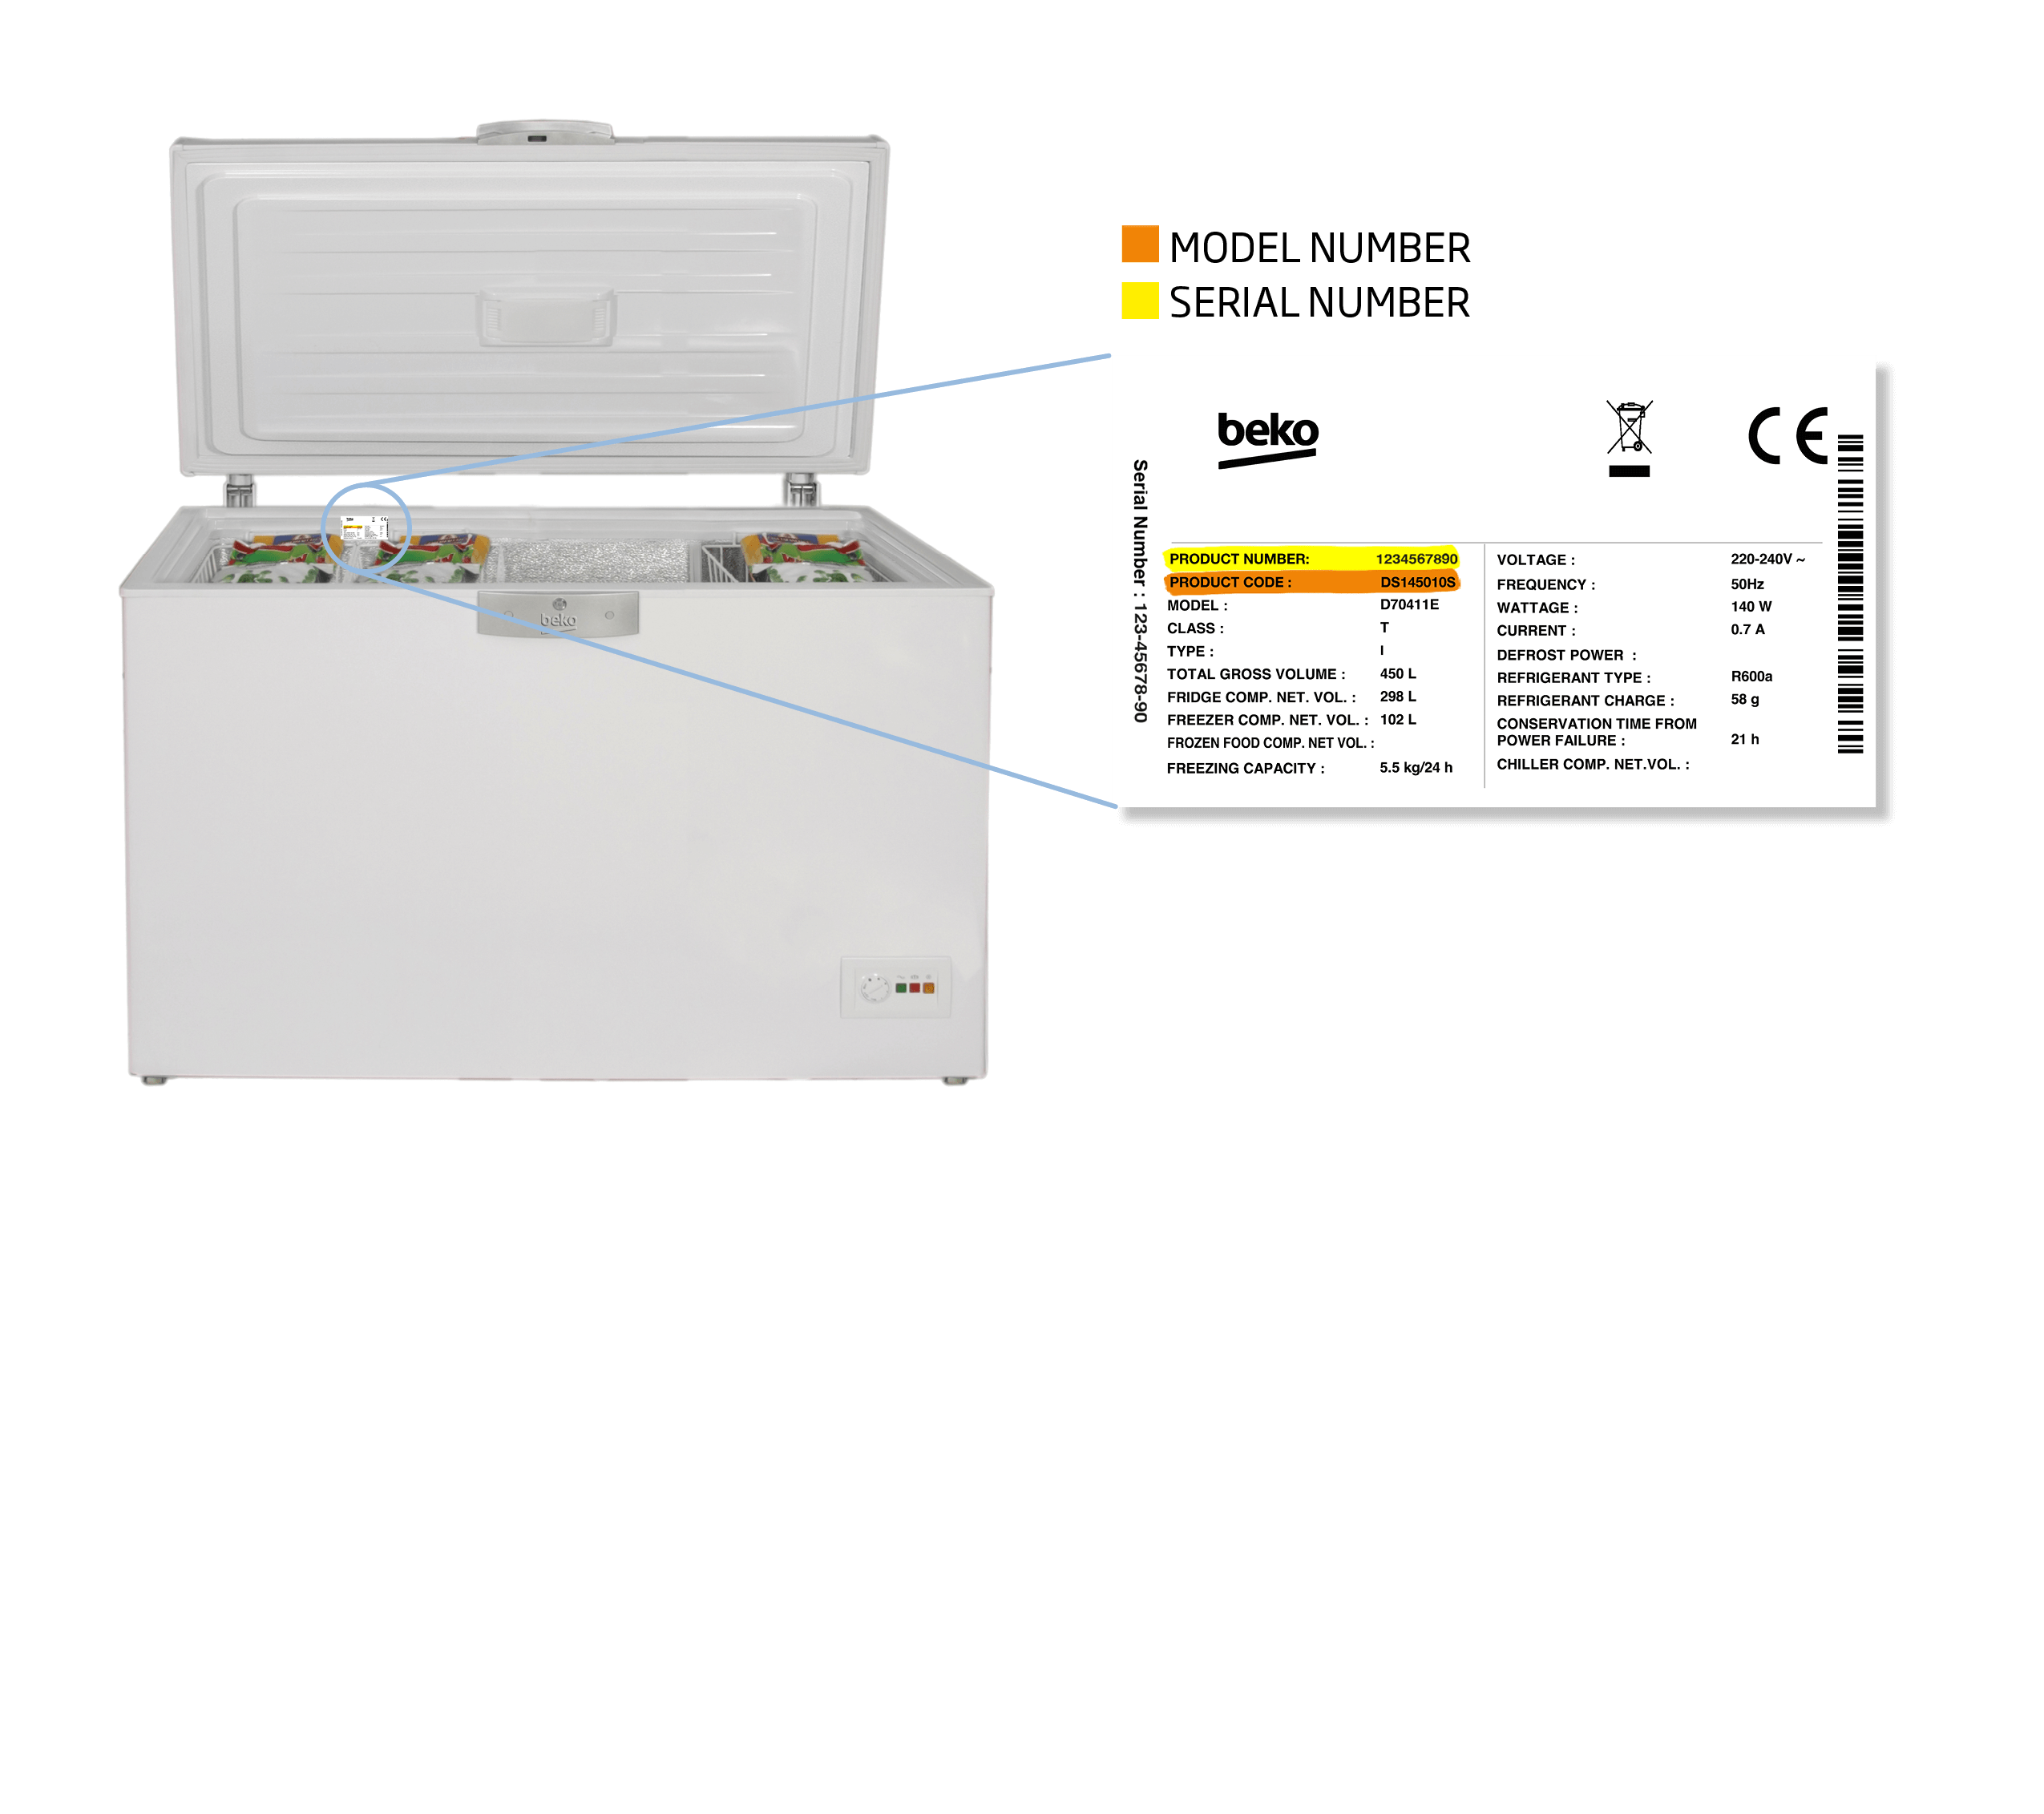 chest freezer model number